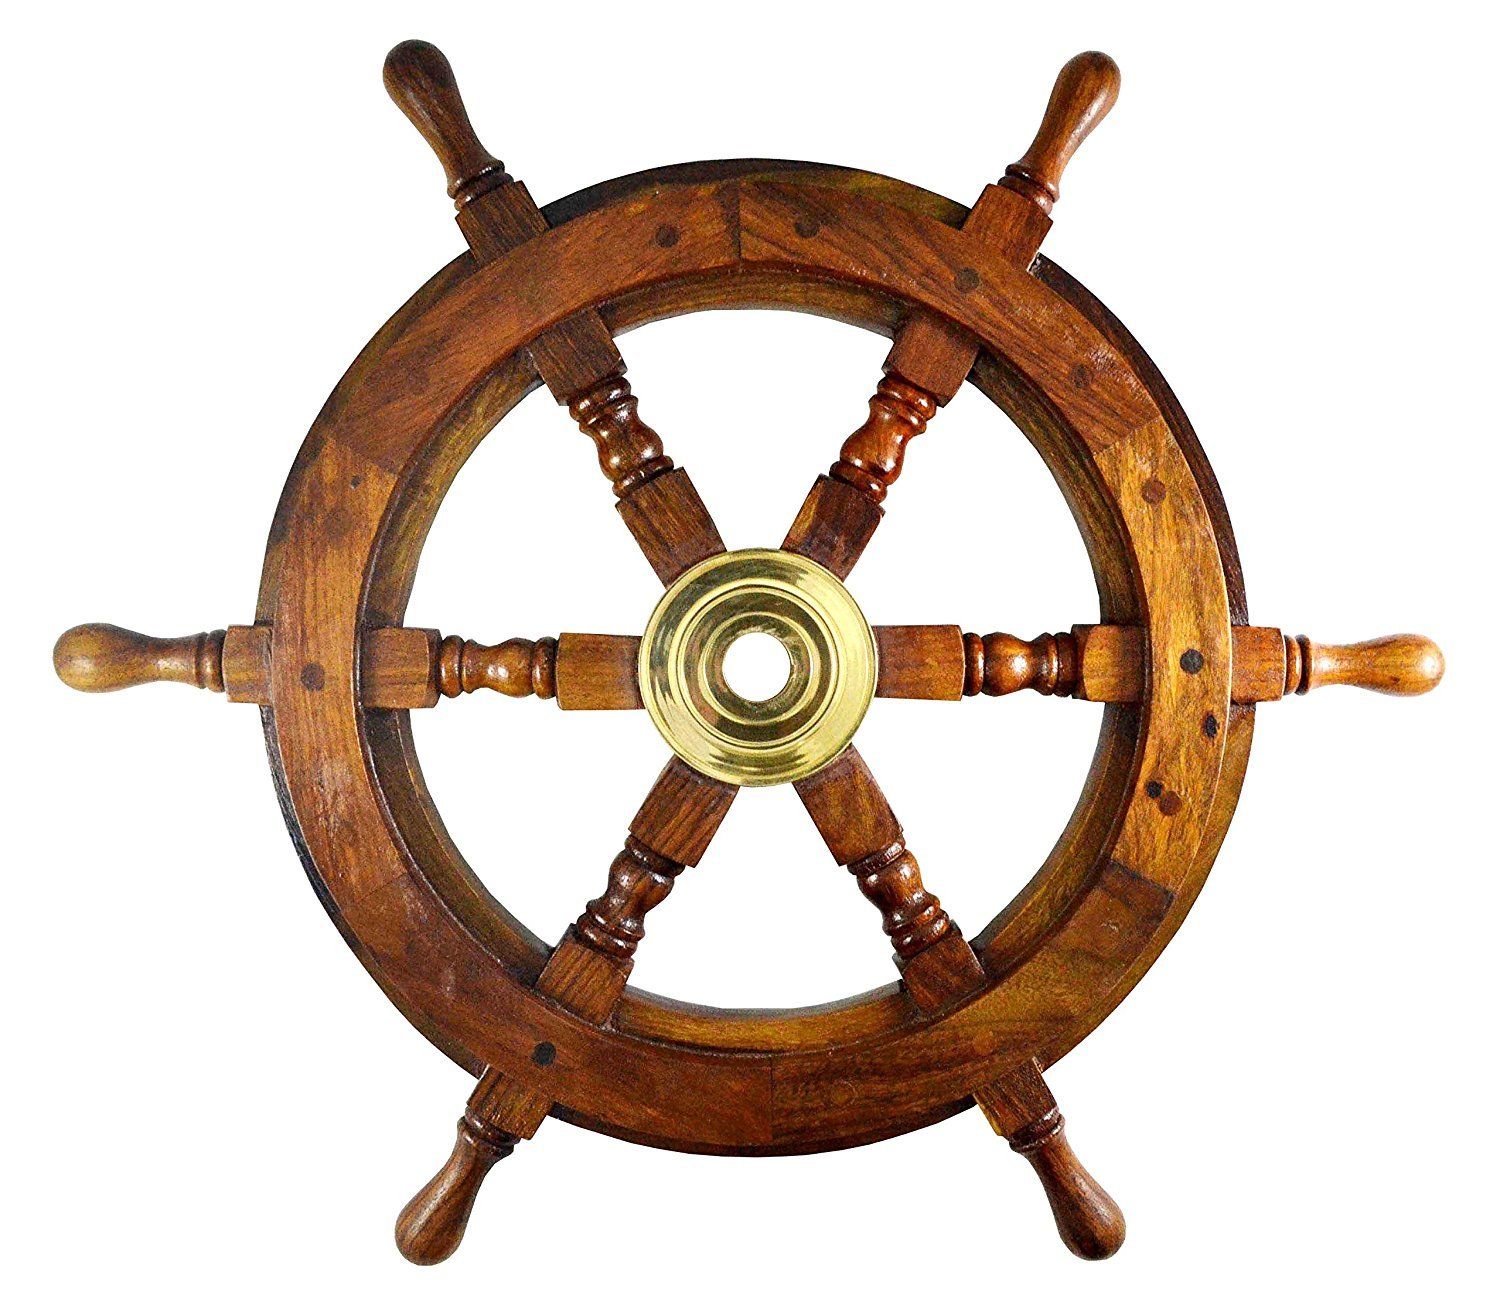 Amazon ship wheel ships steering wheel boat wheel pirate ship amazon ship wheel ships steering wheel boat wheel pirate ship wheel captains wheel nautical decor wooden ship wheel 18 inch dia home kitchen amipublicfo Images